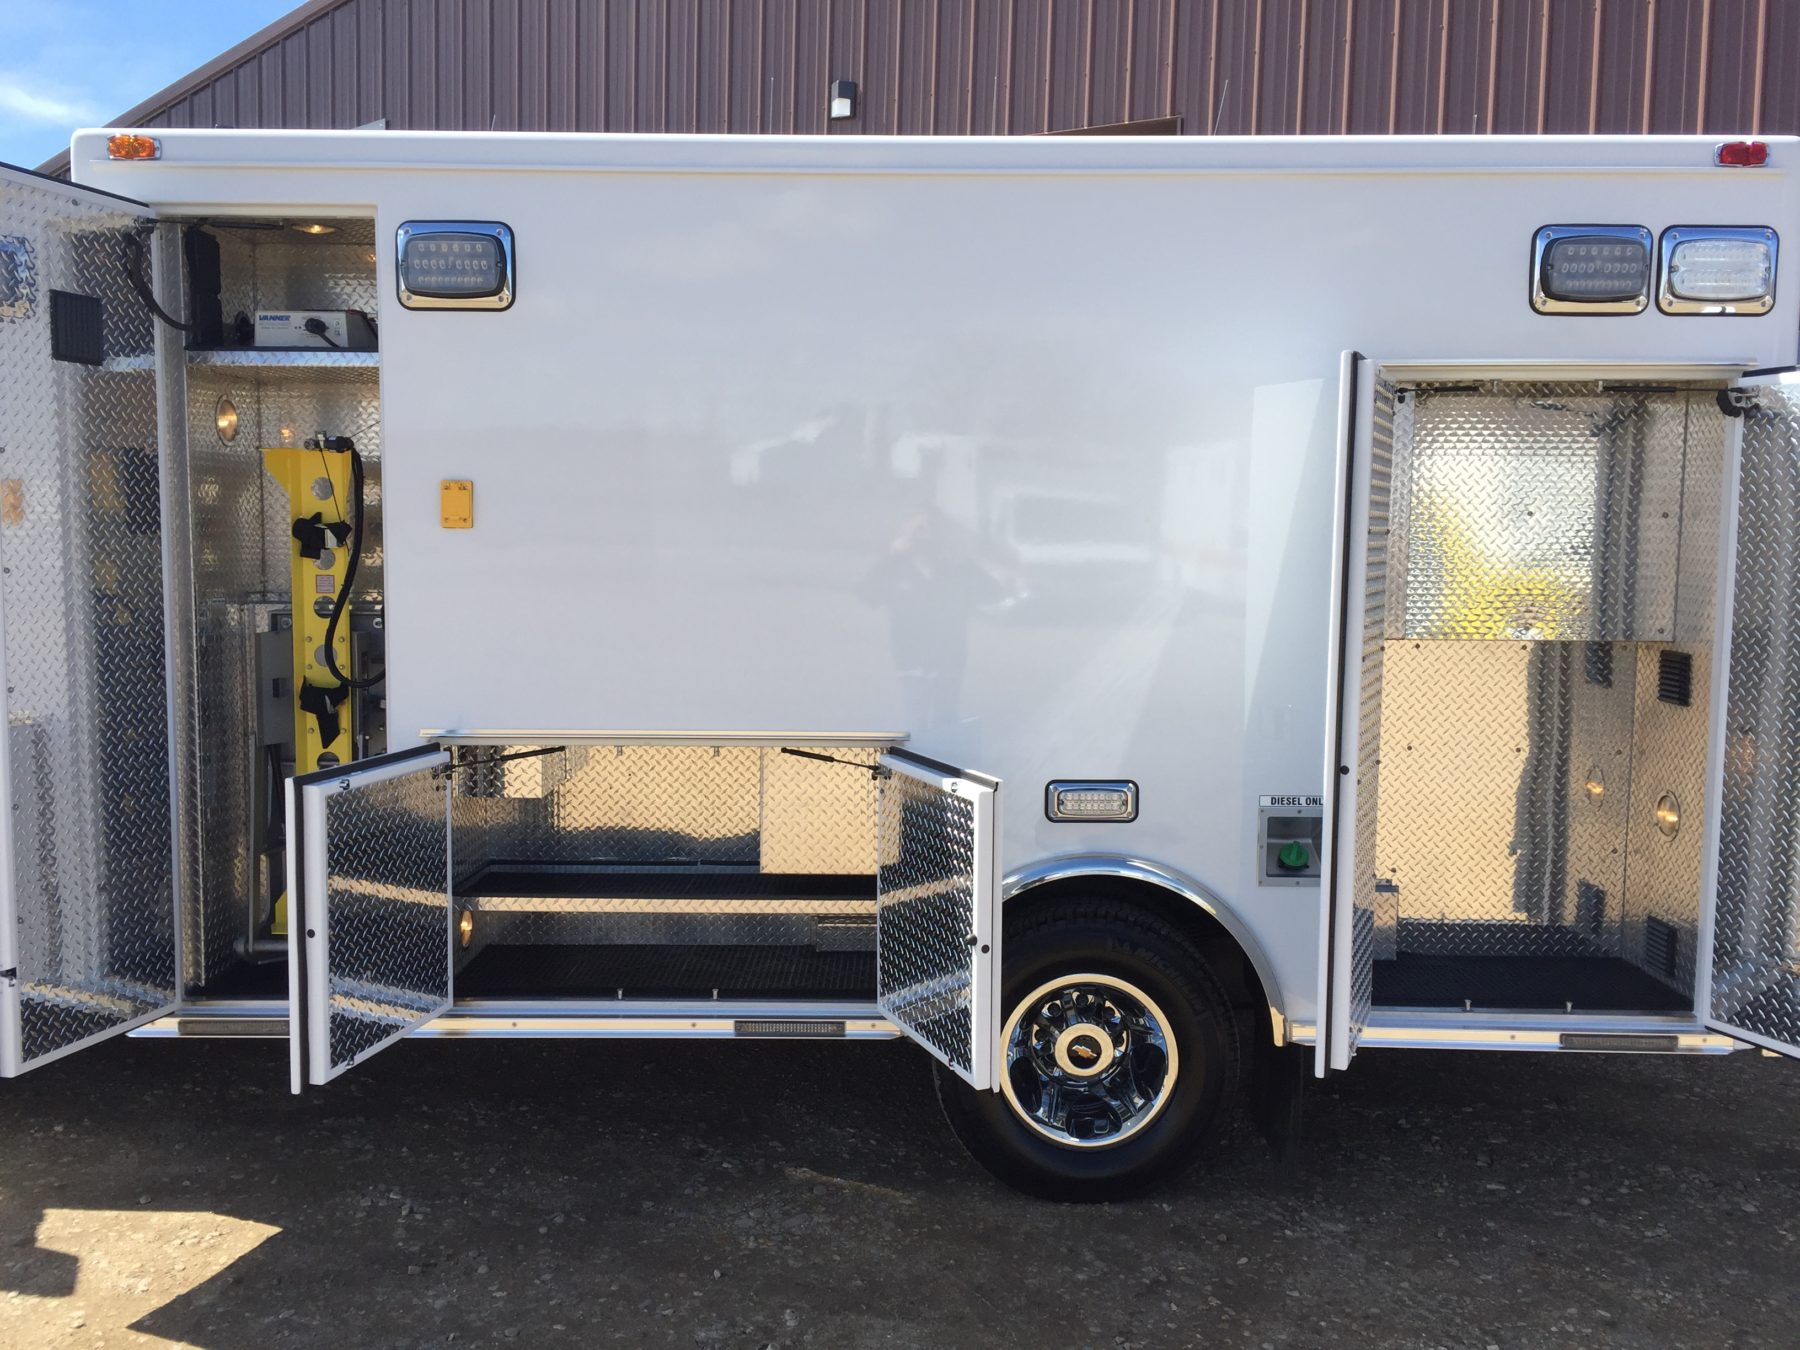 2017 Chevrolet K3500 4x4 Type 1 Ambulance For Sale – Picture 15